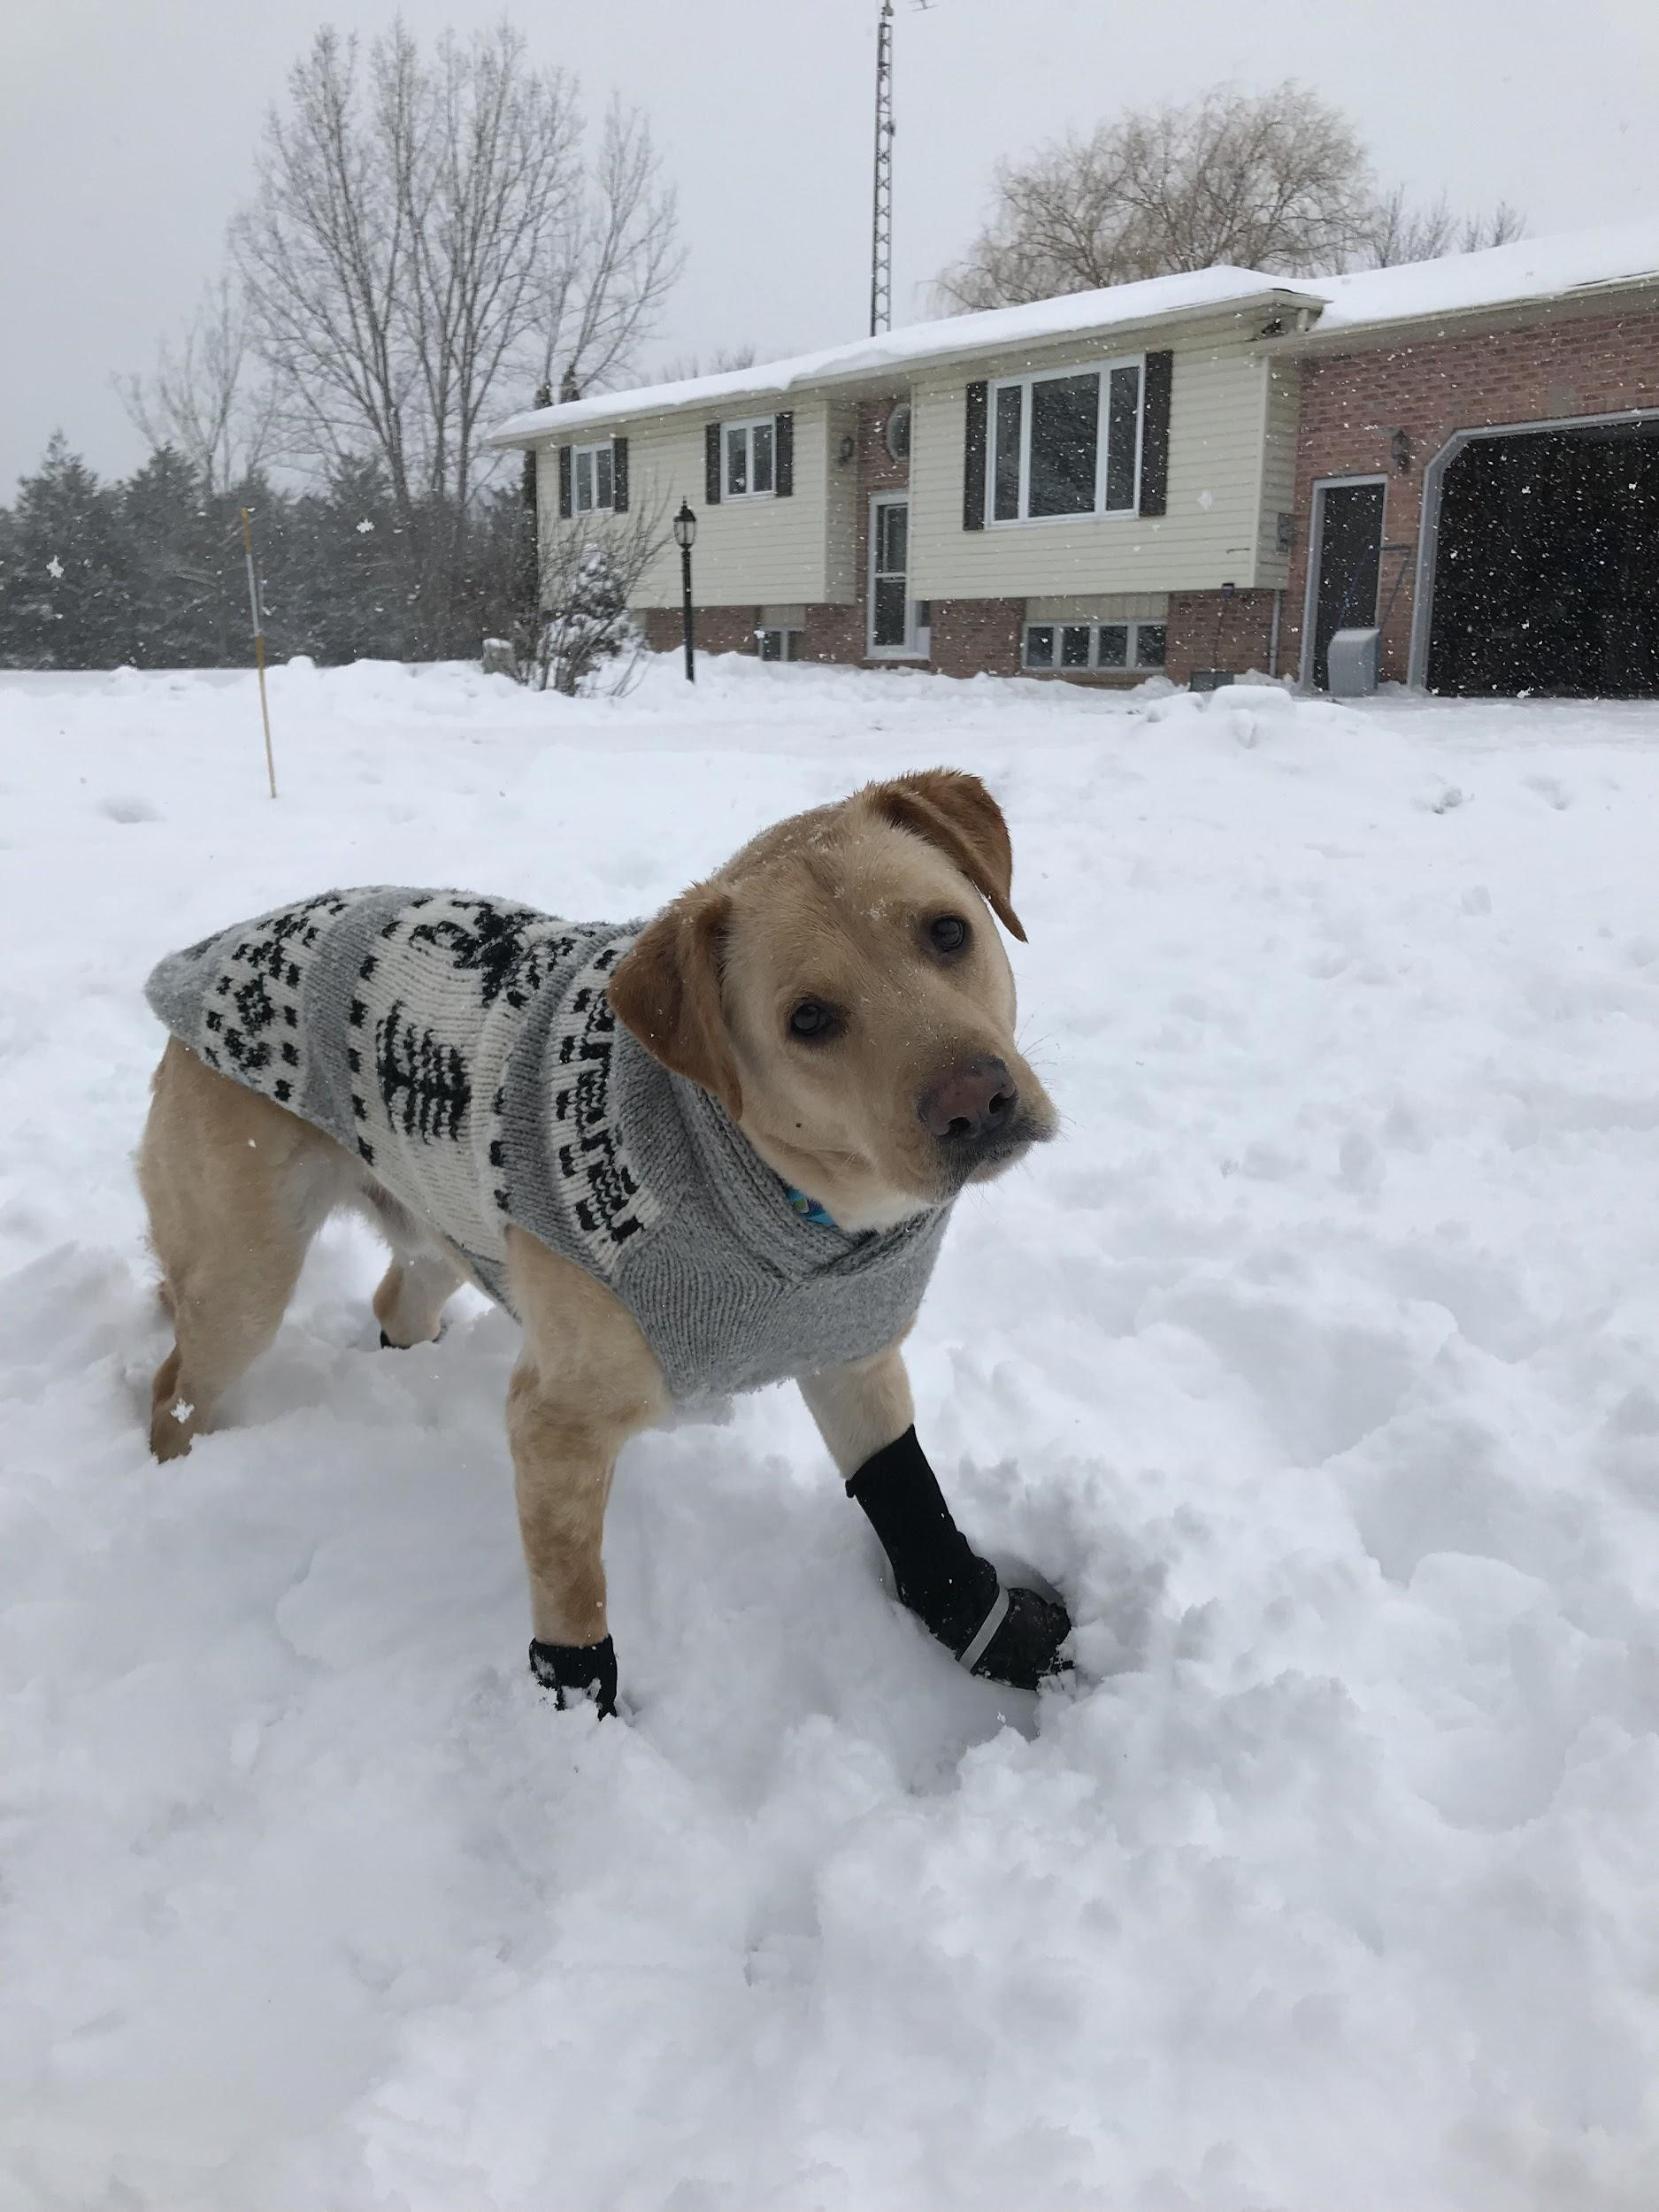 A dog wearing a sweater and standing in snow